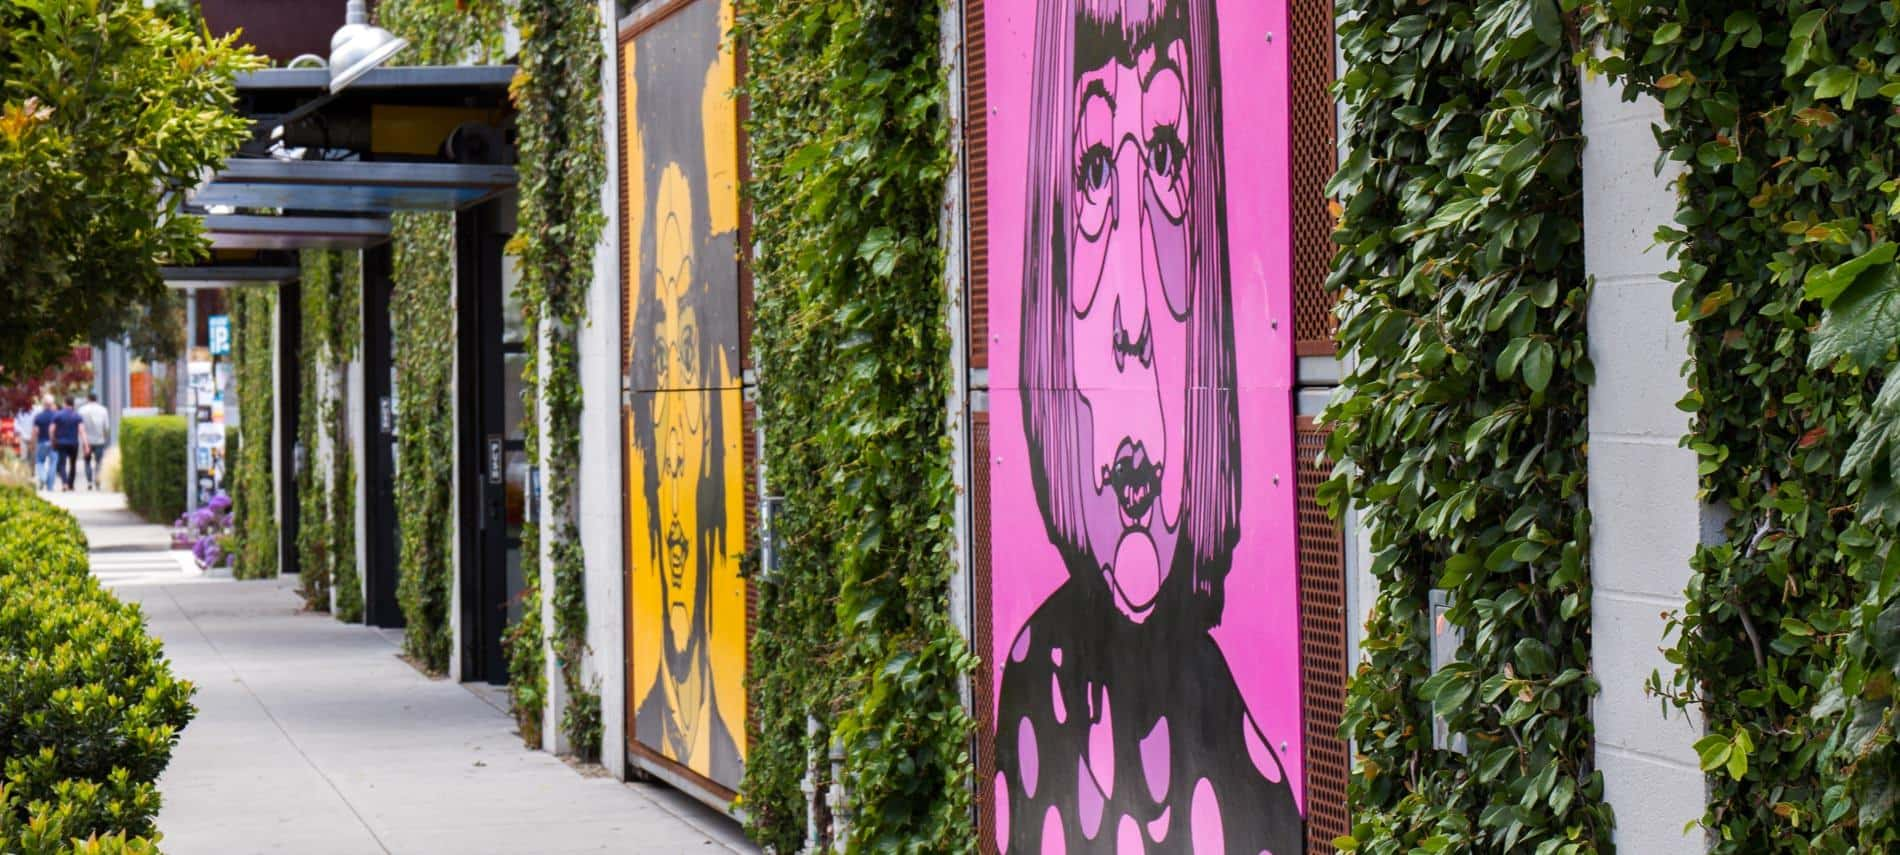 Santa Barbaba sidewalk with colorful drawings on the walls alternating with climbing green vines